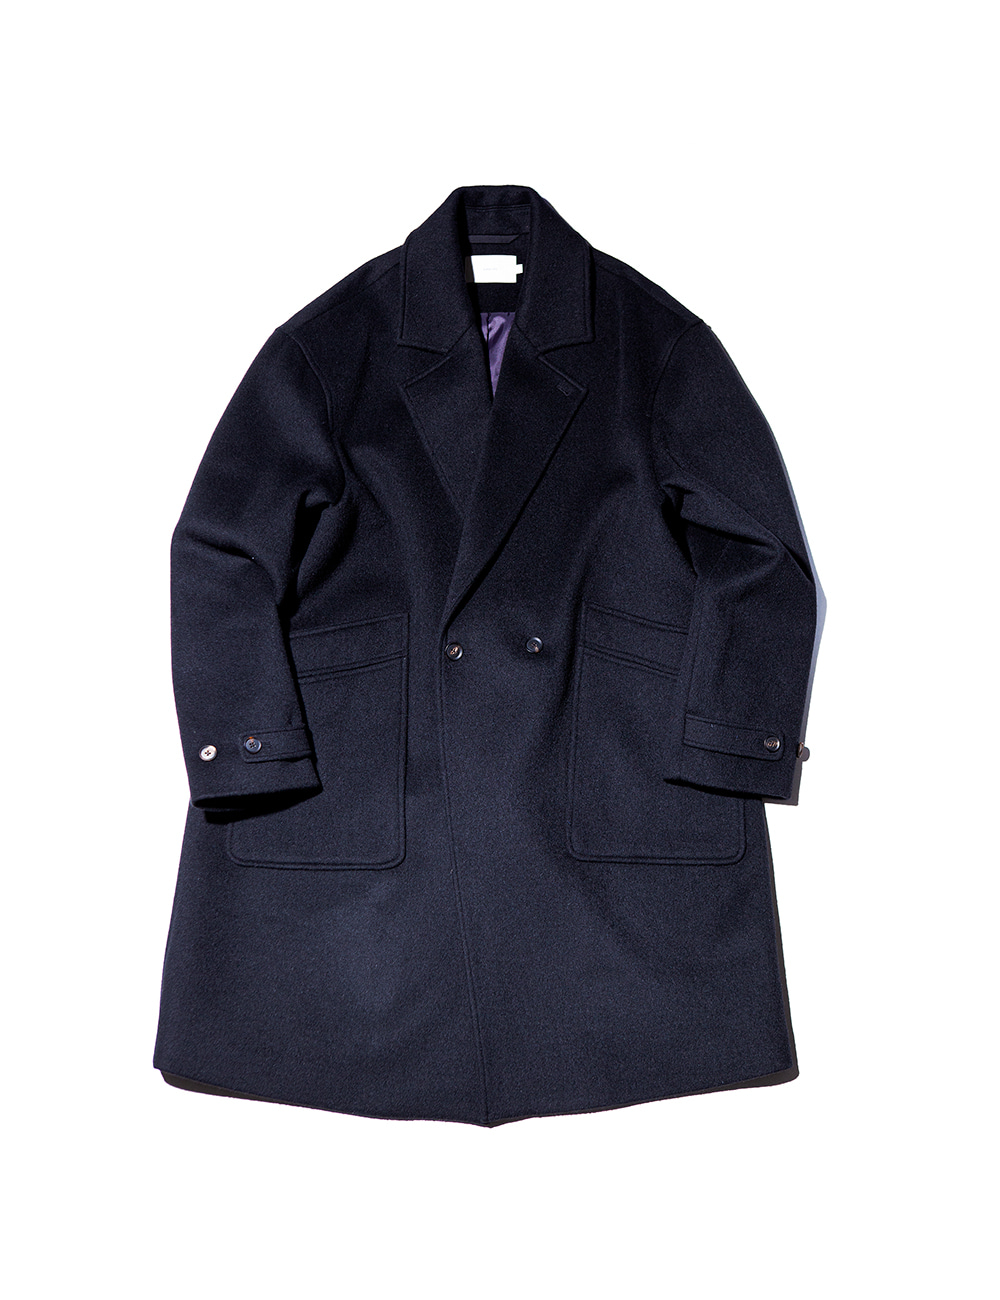 [Ourselves] SOFT WOOL DOUBLE BREASTED COAT (Real black)